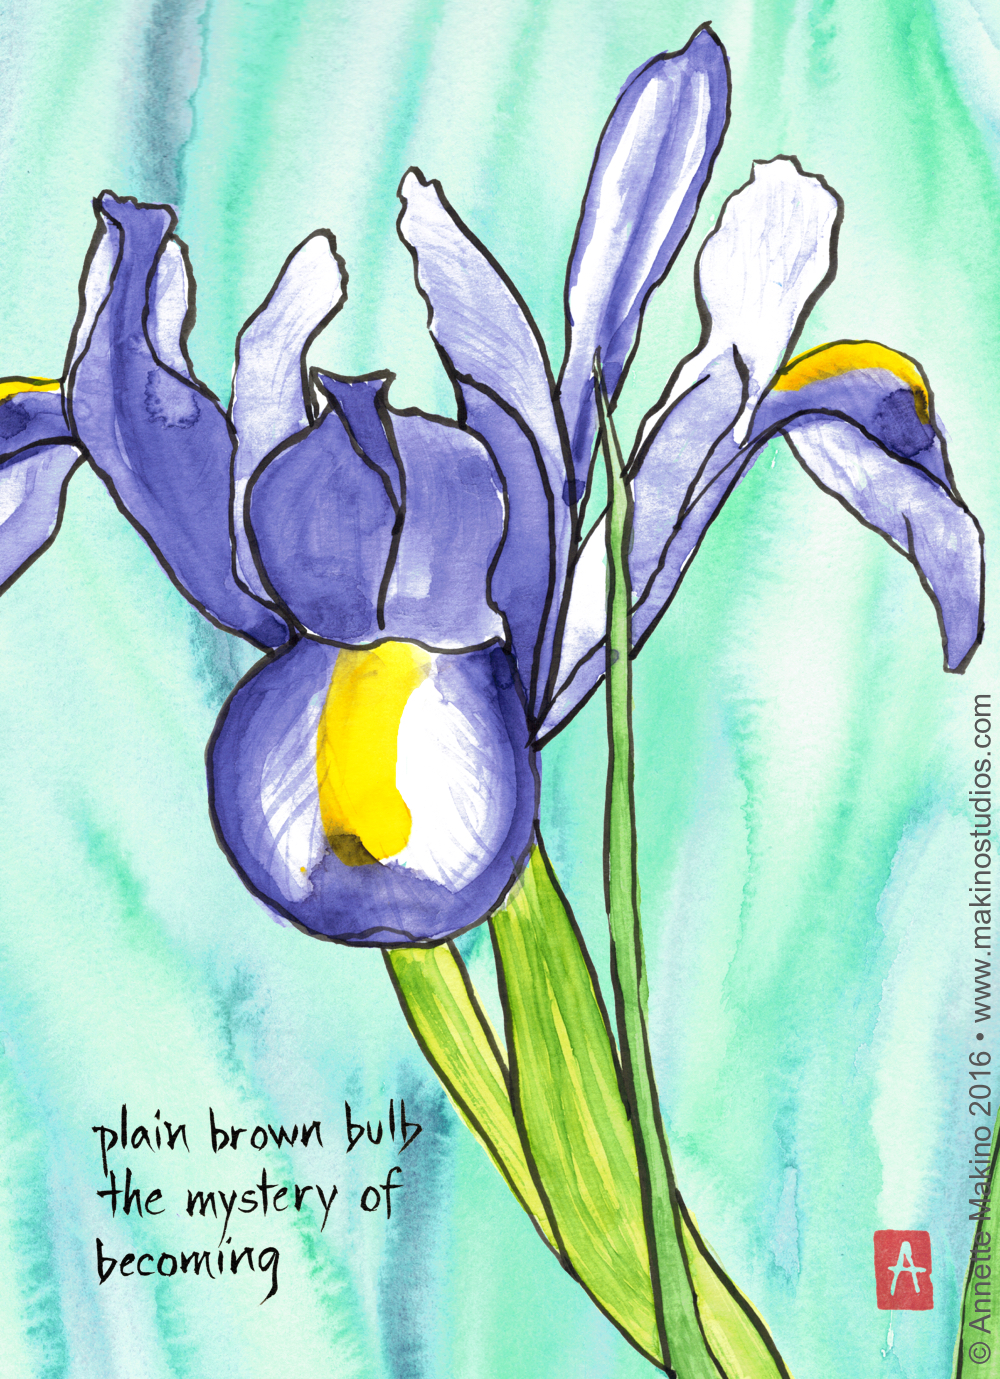 """""""plain brown bulb"""" is 8x10, painted with sumi ink and Japanese watercolors on paper and digitally edited. It is available as a  birthday card reading """"happy birthday to the one and only you.""""  © Annette Makino 2016"""